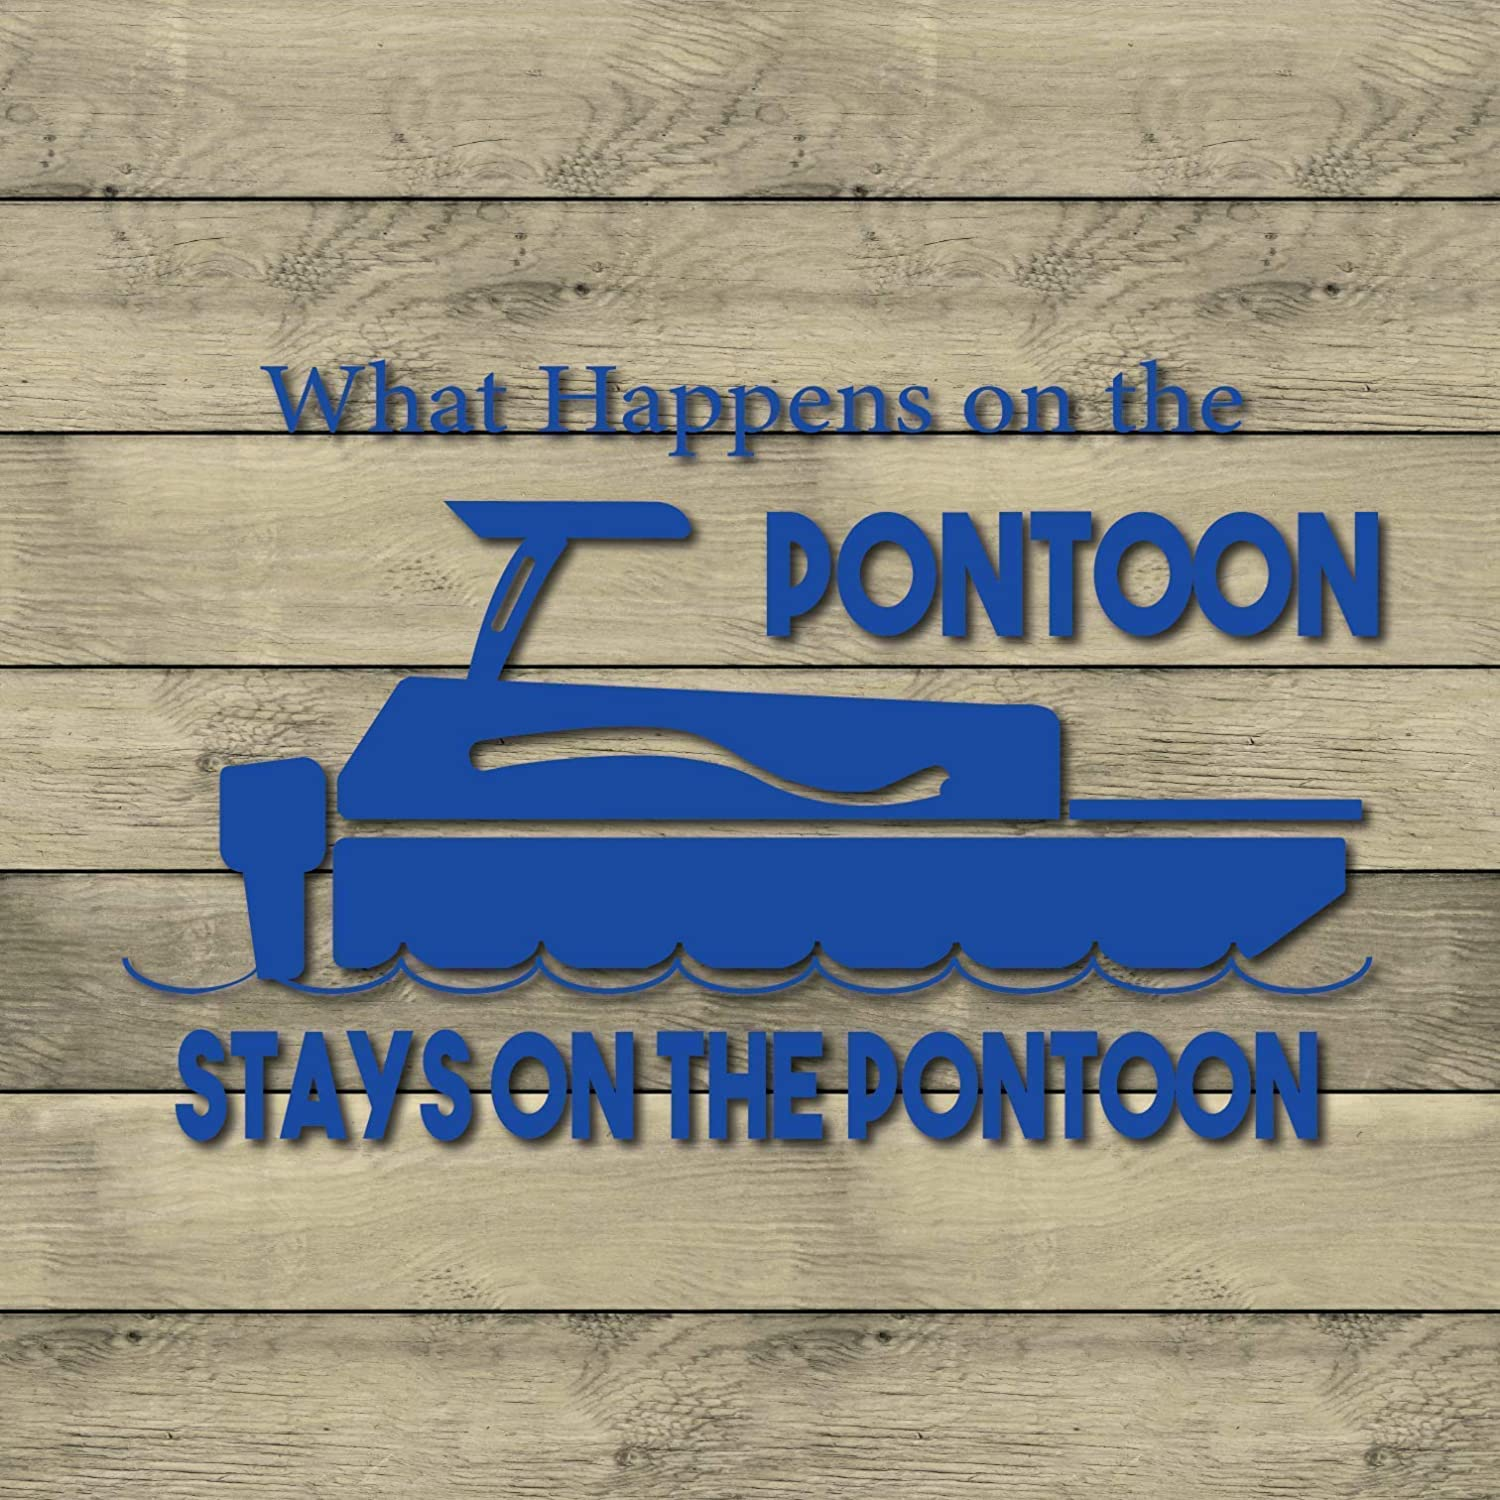 Set of 2 8 Vinyl Boat Decal What Happens on the Pontoon Stays on the Pontoon Sticker